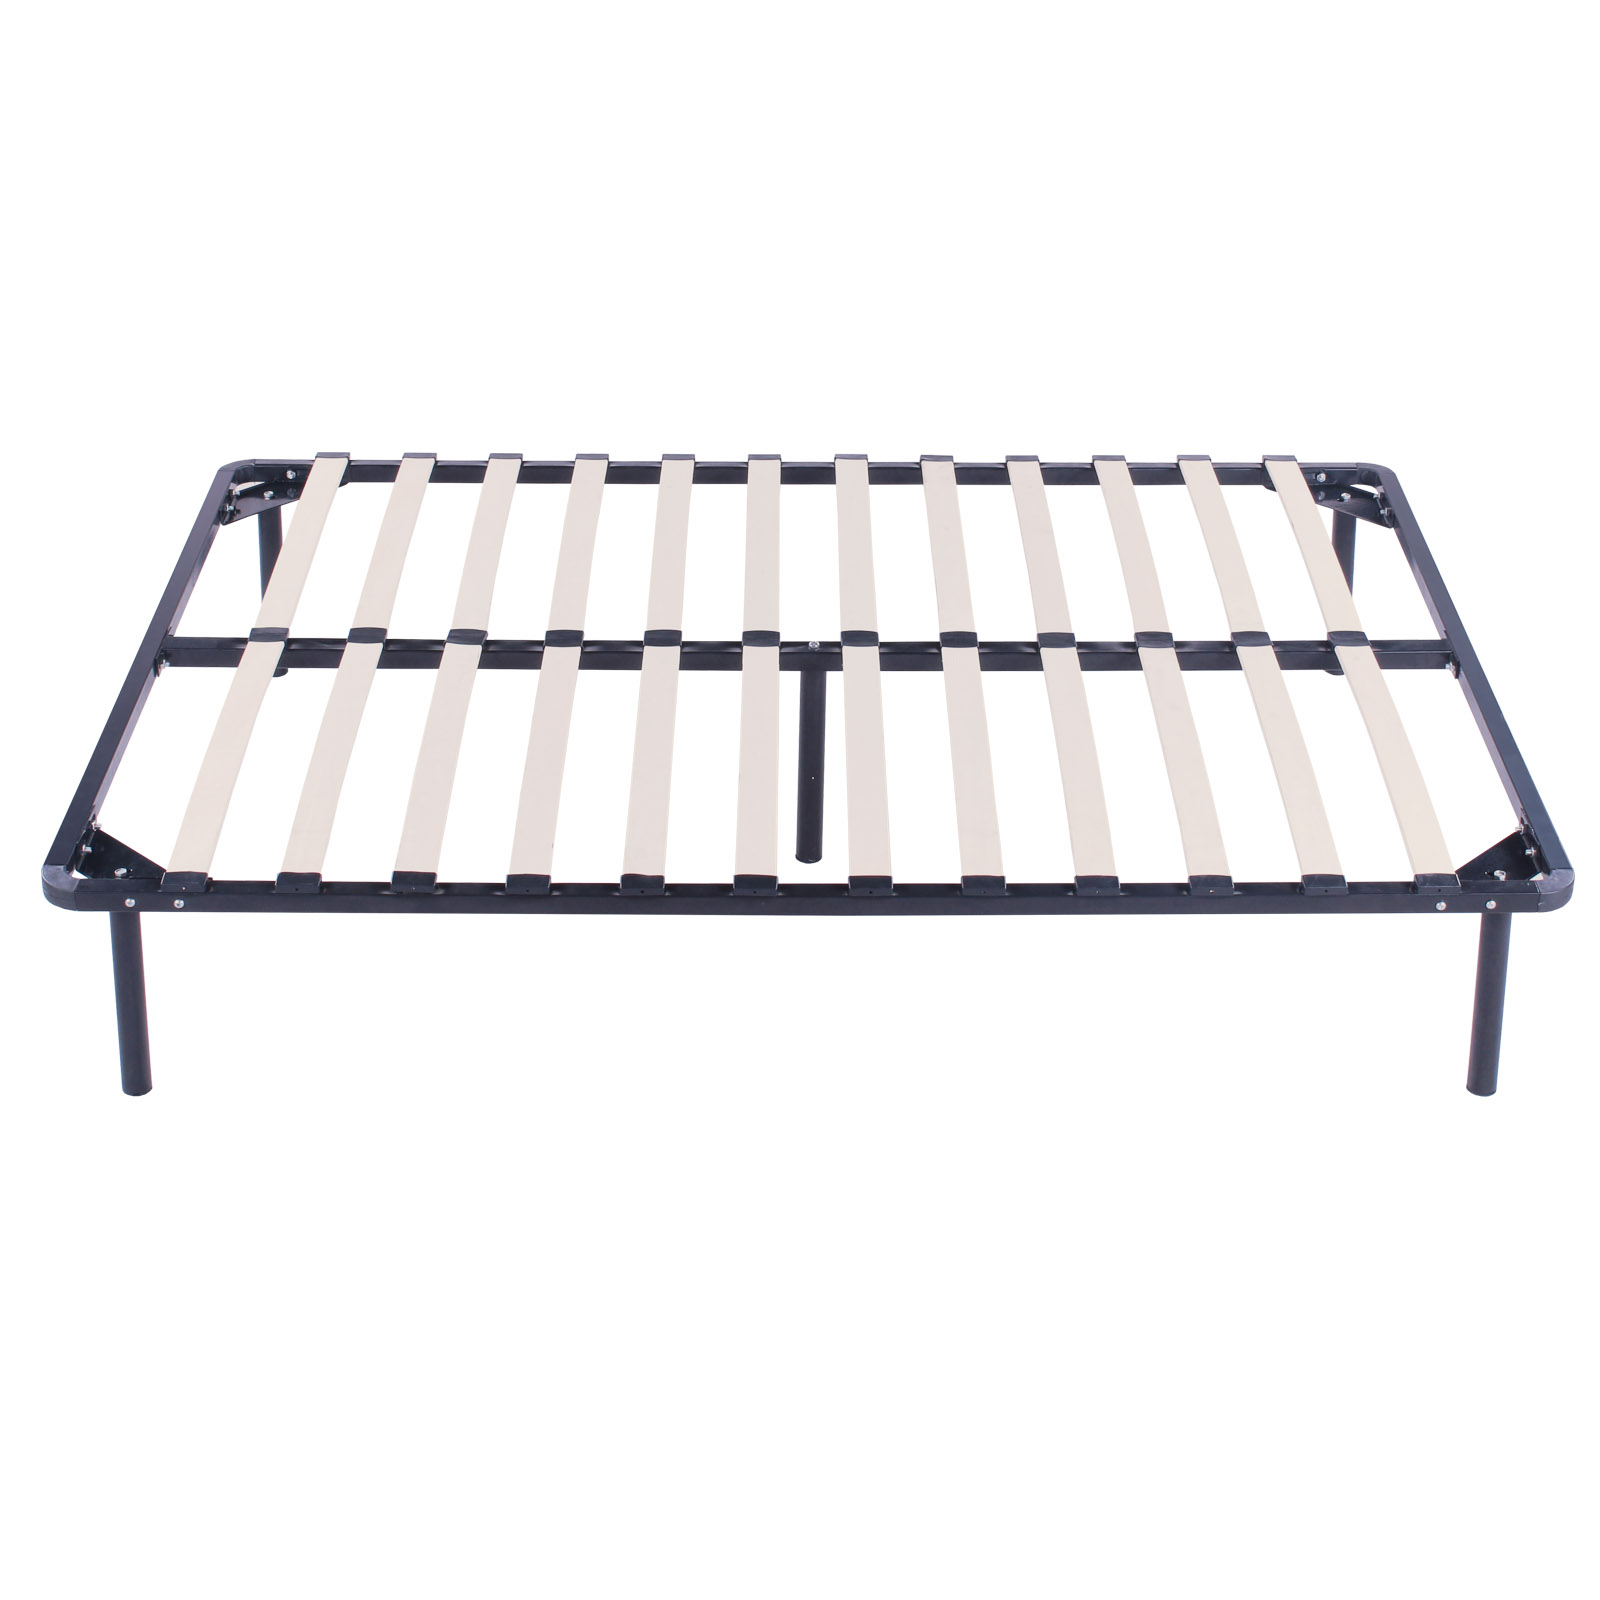 Double Bed Frames  TheBedWarehouse